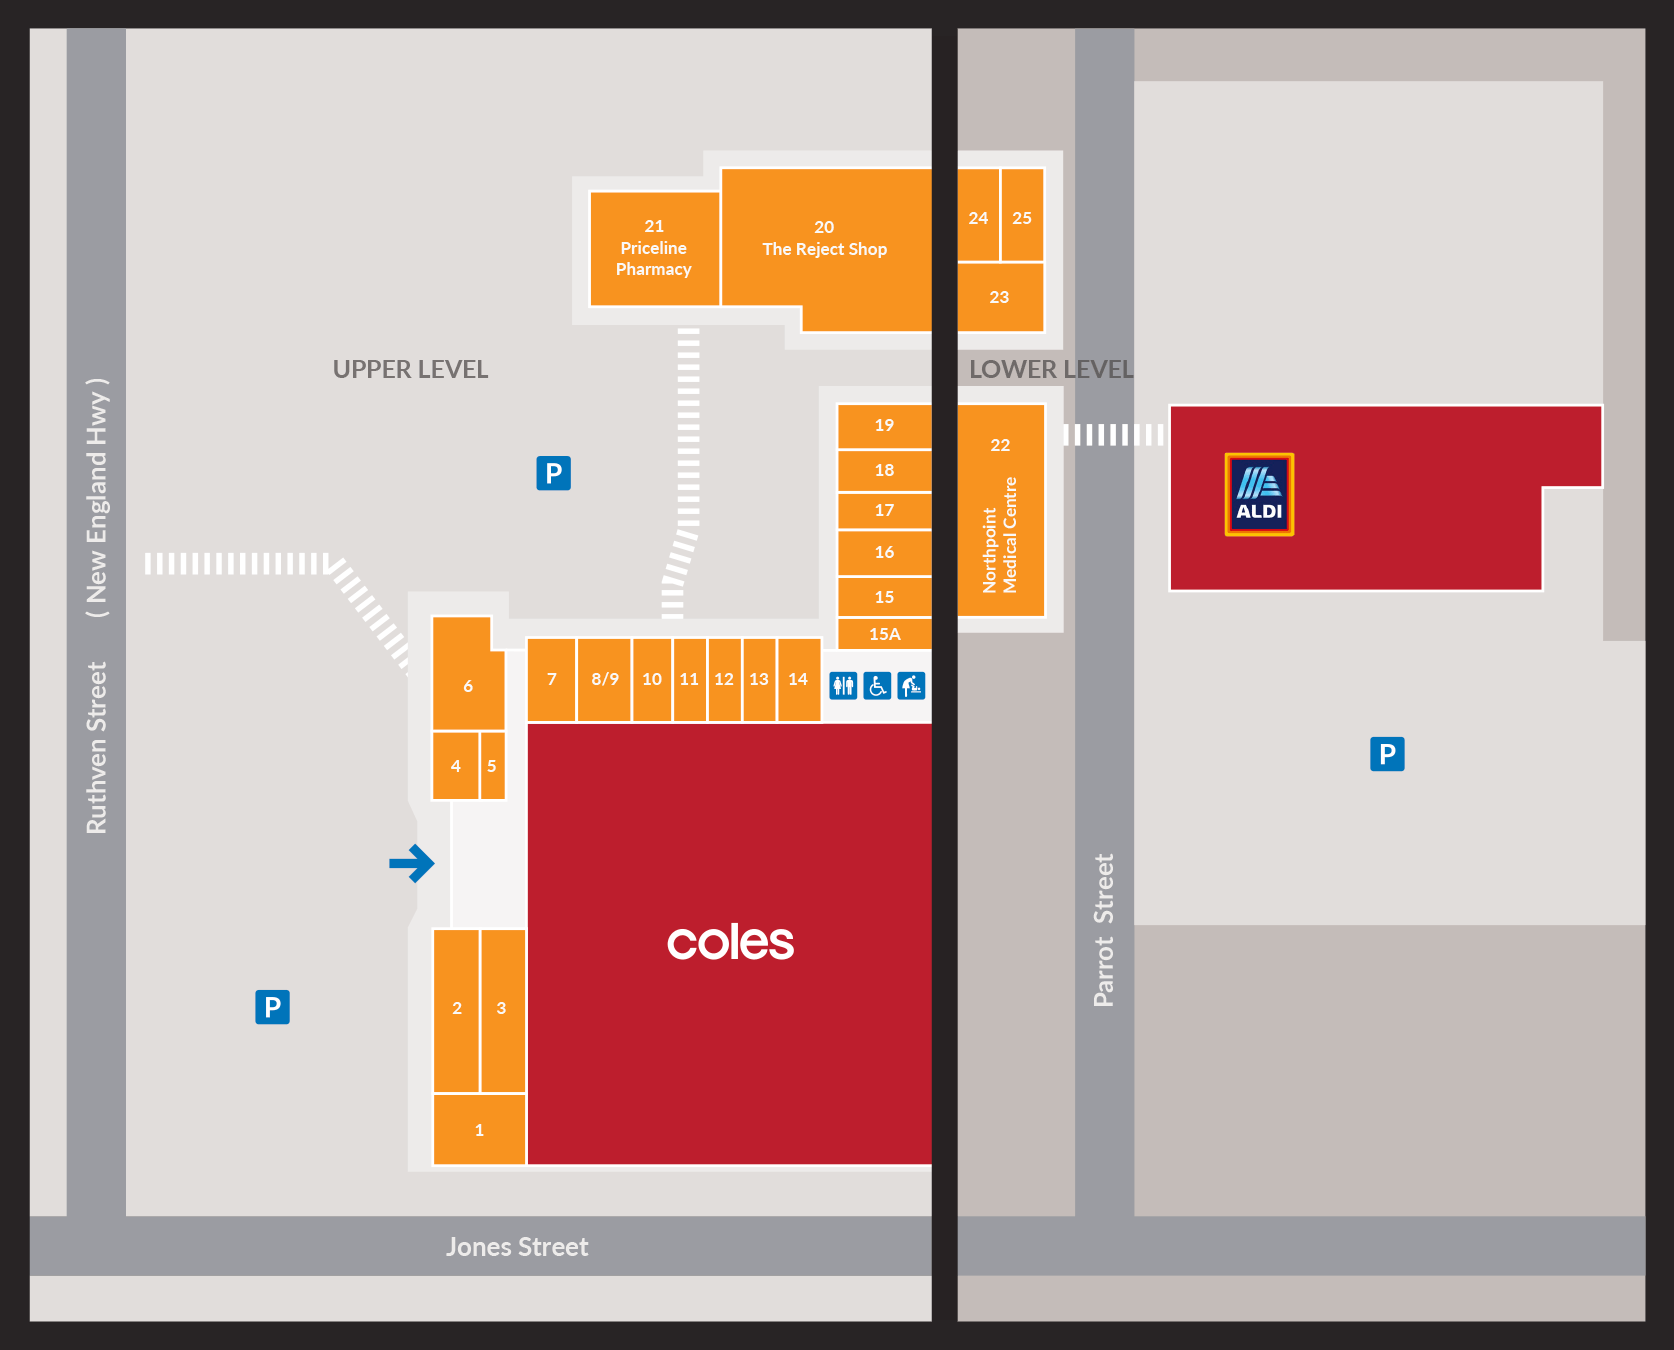 Northpoint Shopping Centre Map